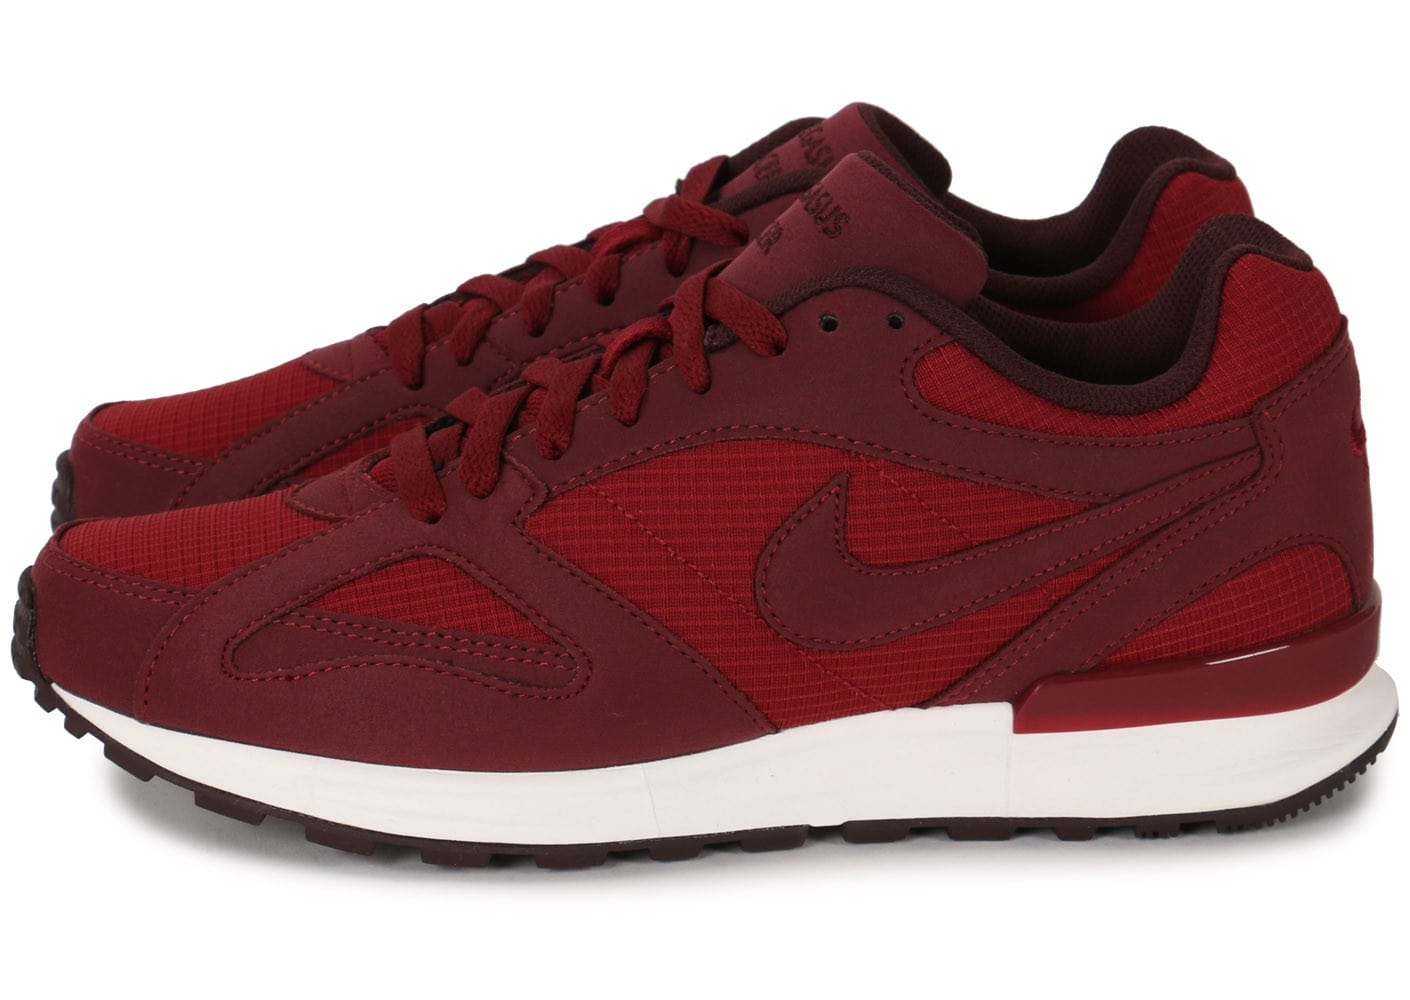 nike air pegasus new racer rouge chaussures homme chausport. Black Bedroom Furniture Sets. Home Design Ideas